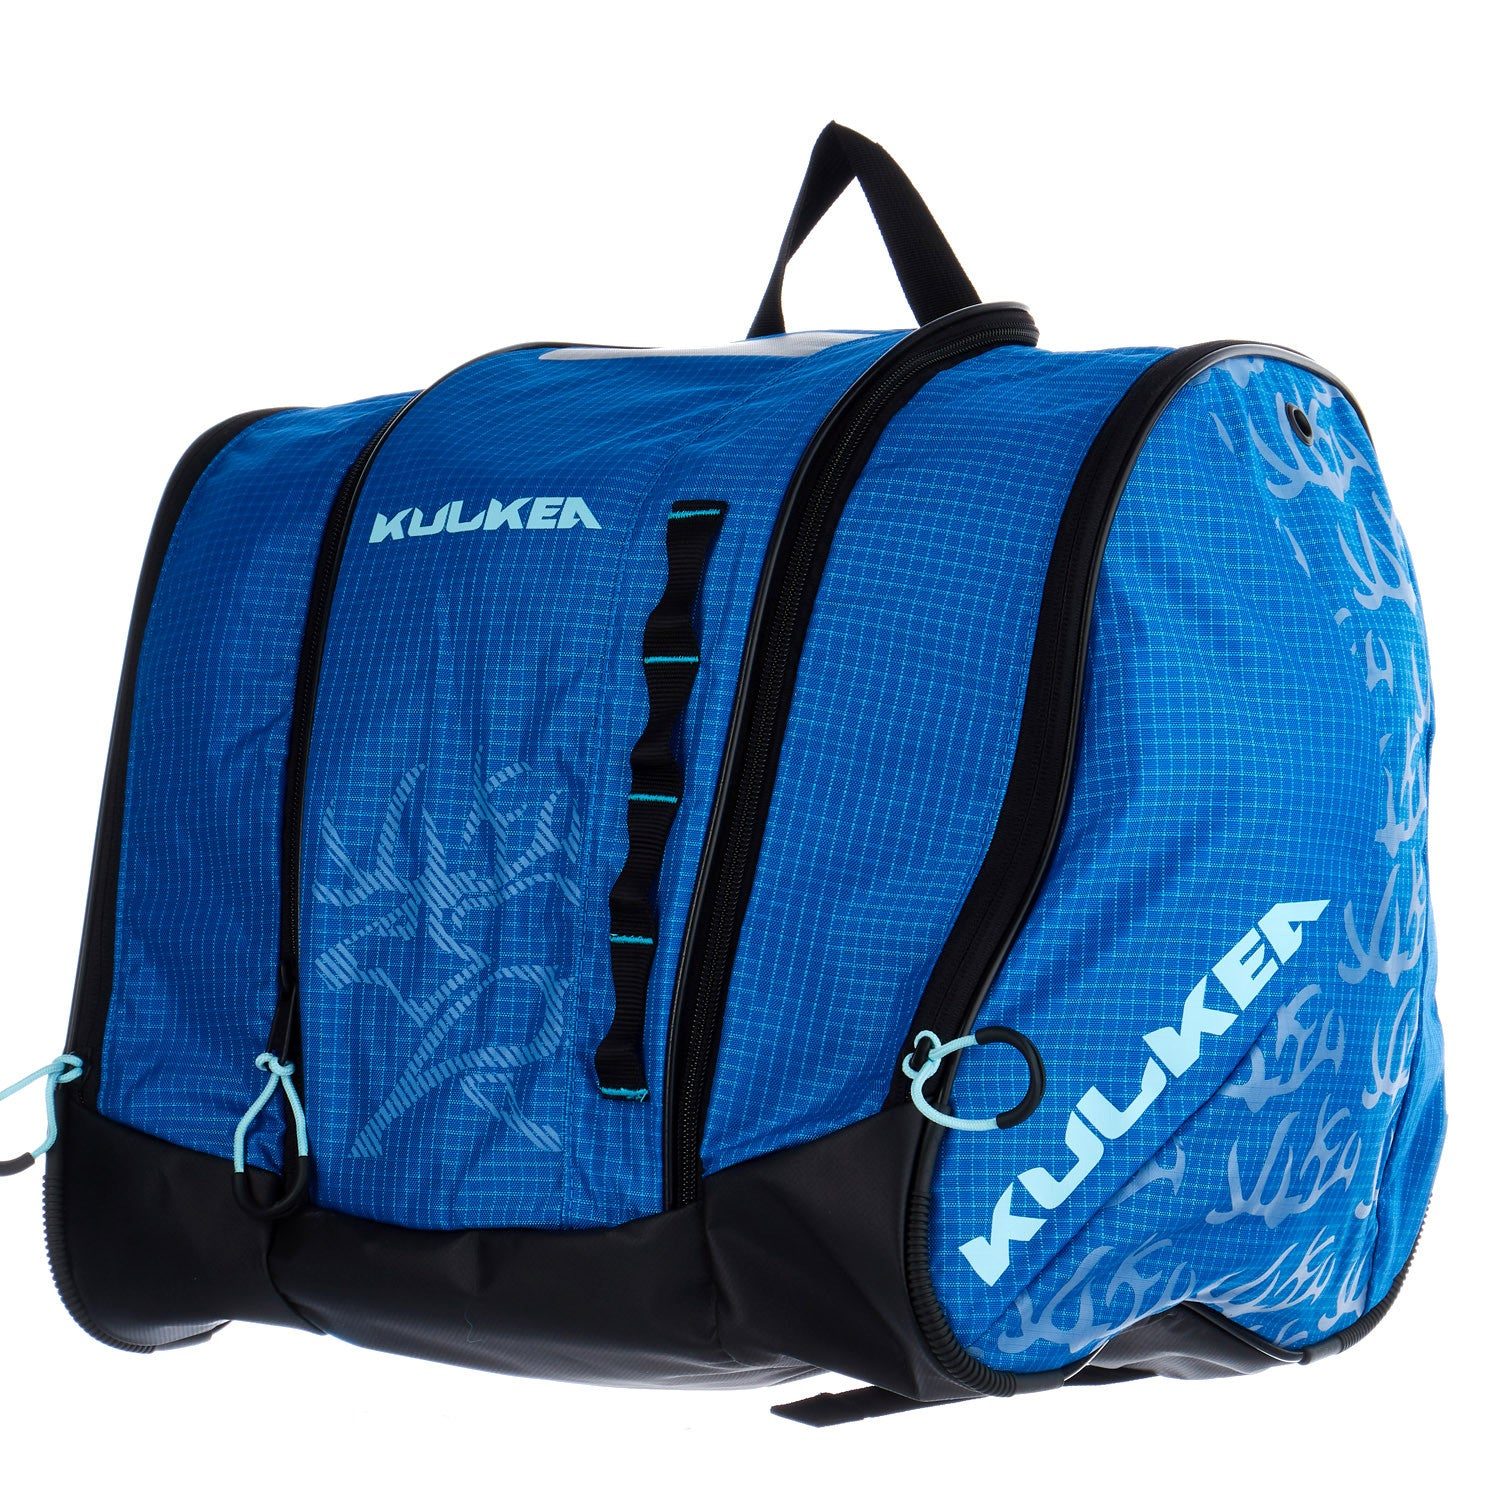 35L Kulkea Speed Star Ski Boot Bag